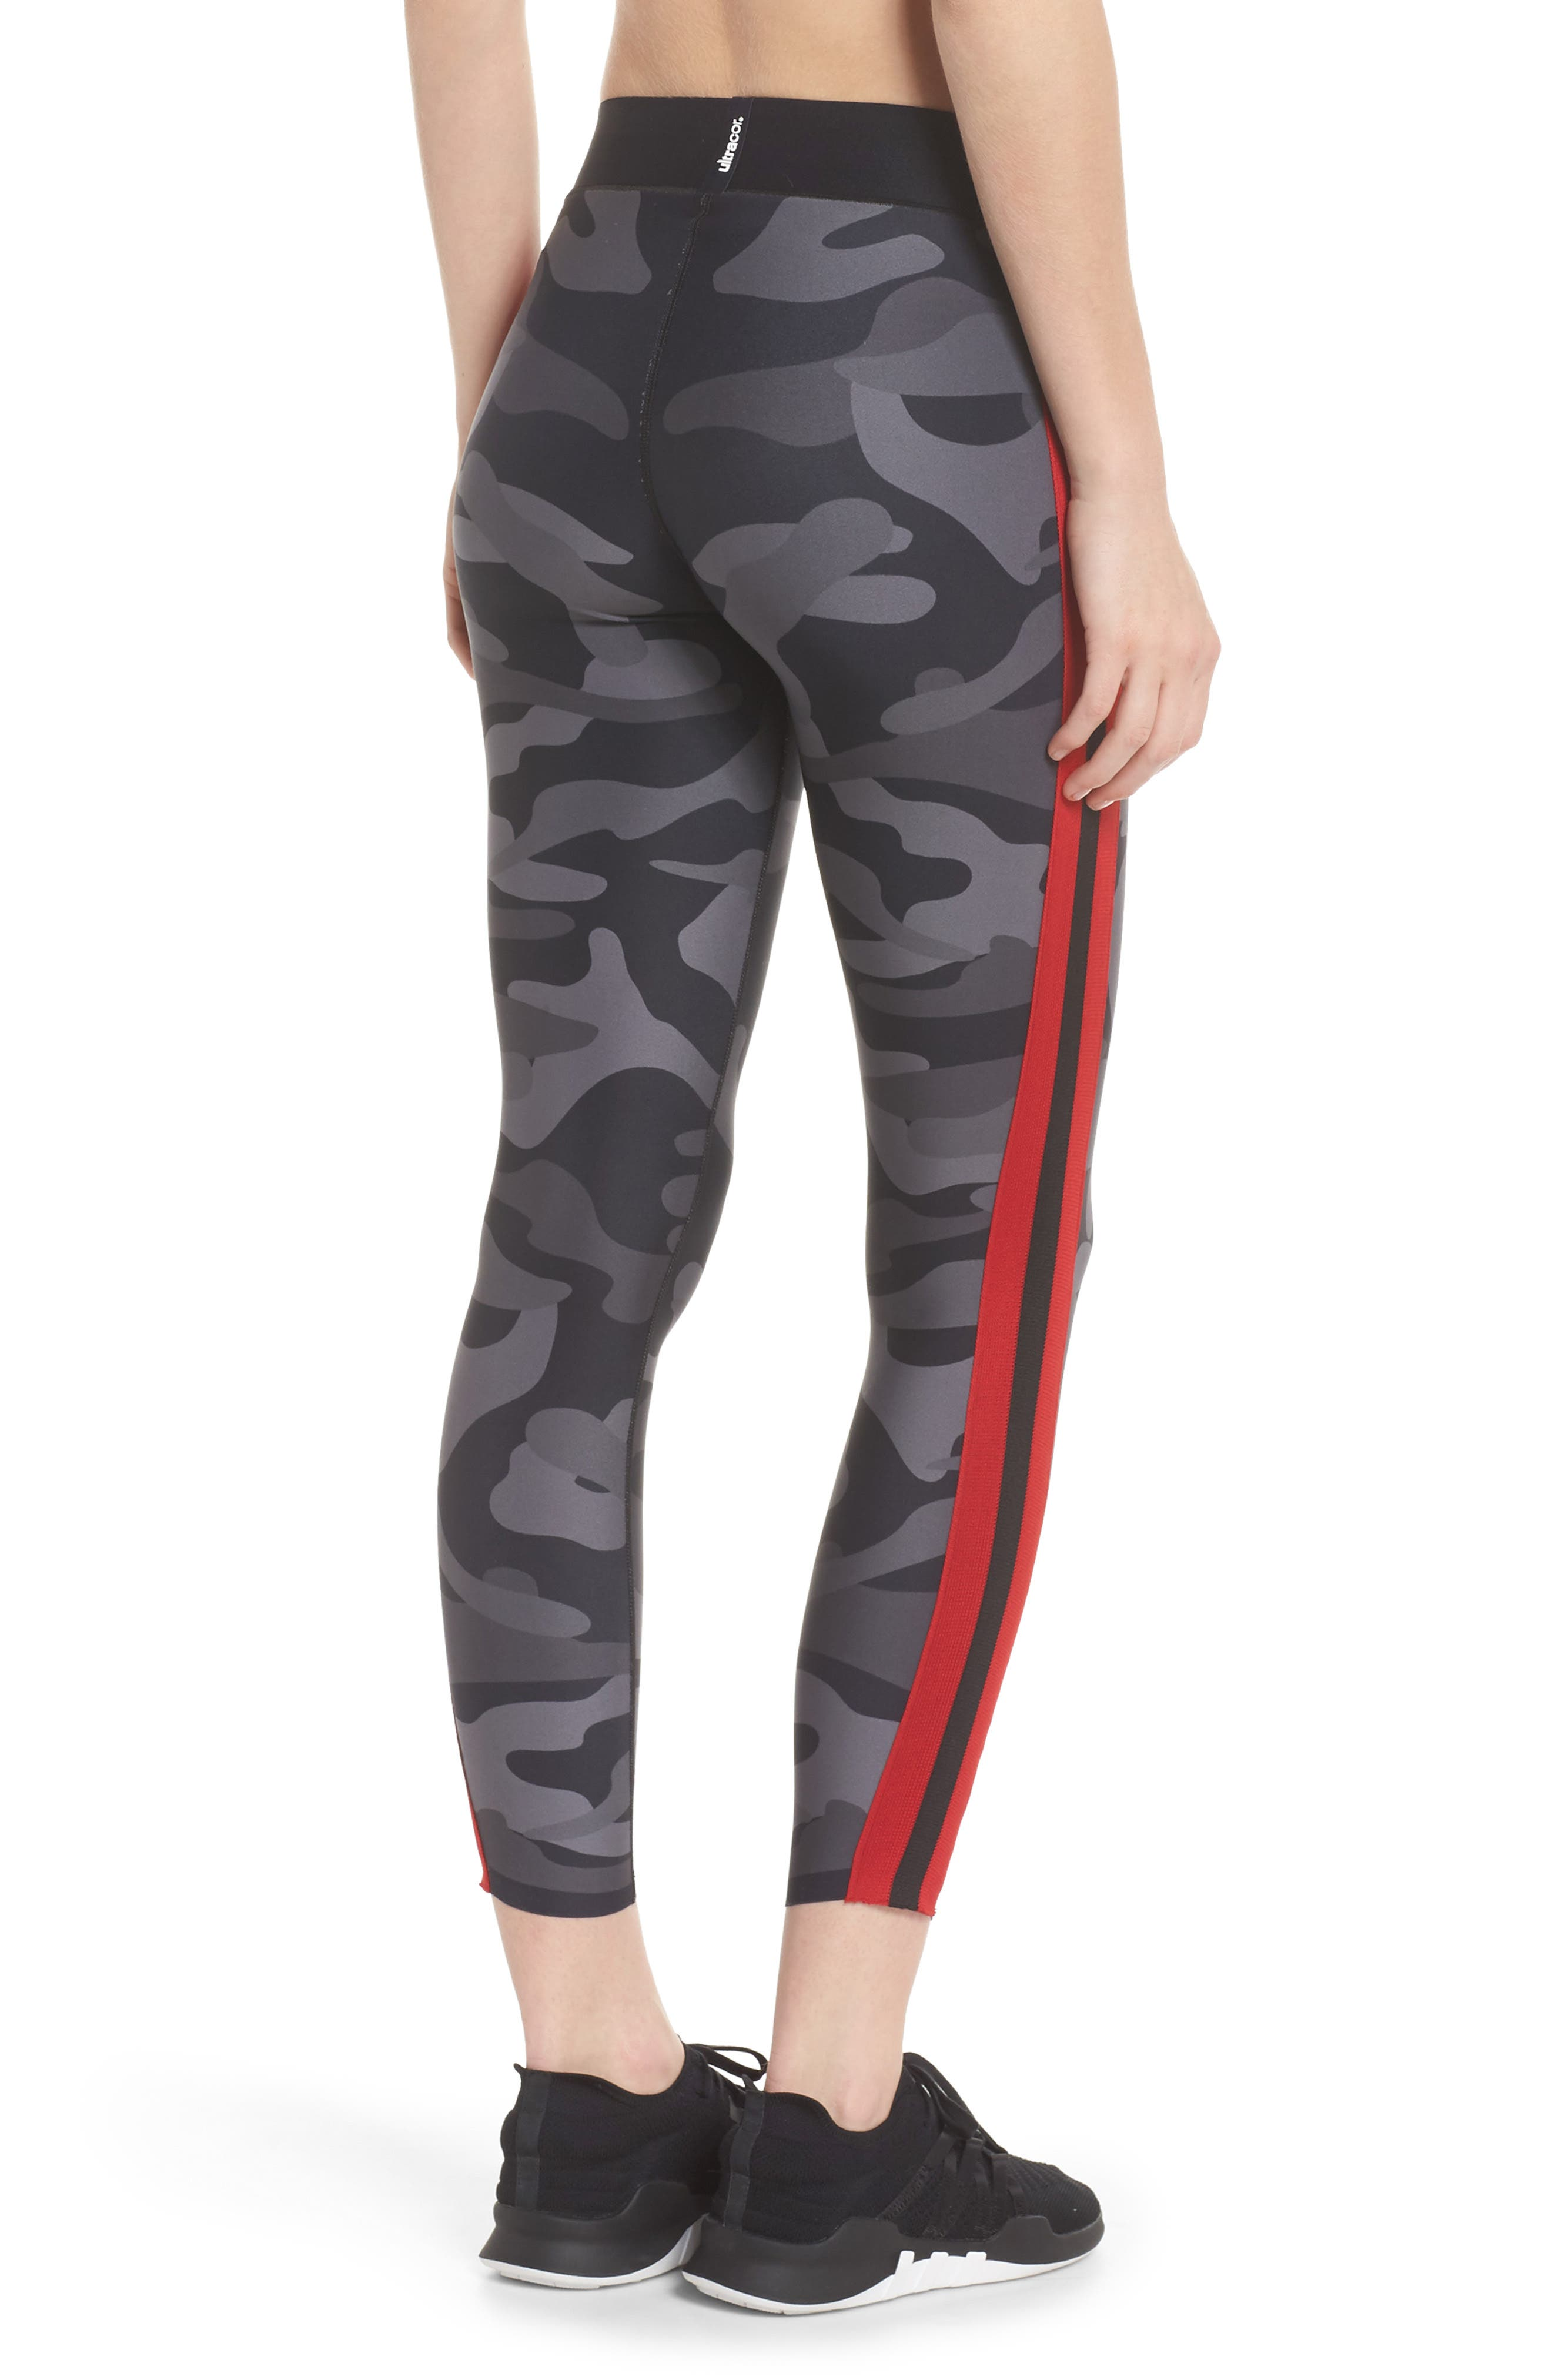 Ultra Camo Collegiate Leggings,                             Alternate thumbnail 2, color,                             005